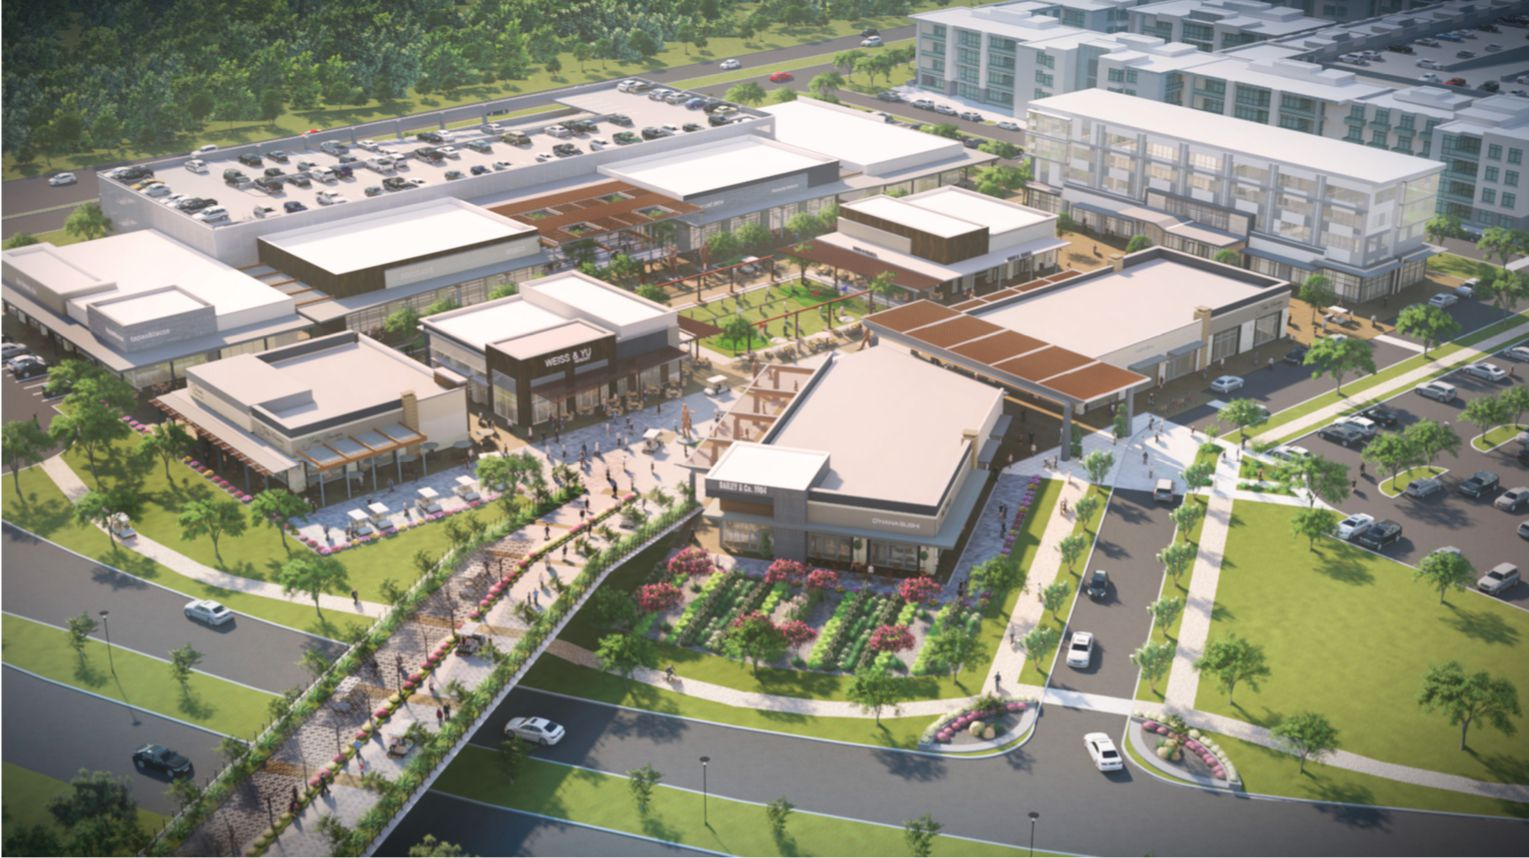 Stillwater Capital, DSF Capital and investor Stephen Summers plan to develop a 250-acre mixed-use project on Legacy Drive south of U.S. Highway 380.